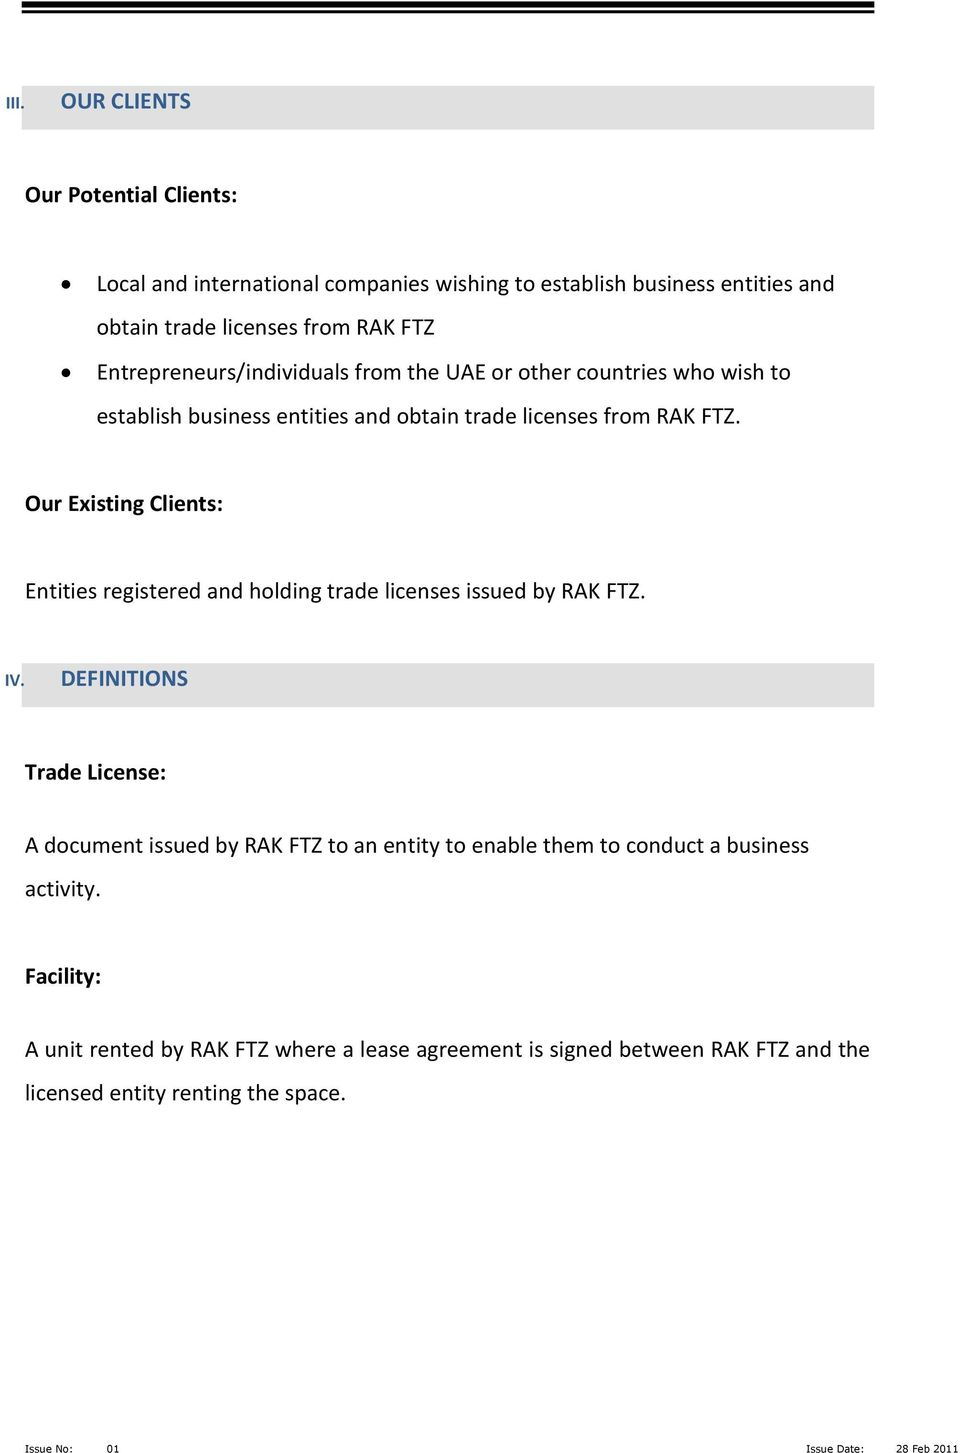 Our Existing Clients: Entities registered and holding trade licenses issued by RAK FTZ. IV.